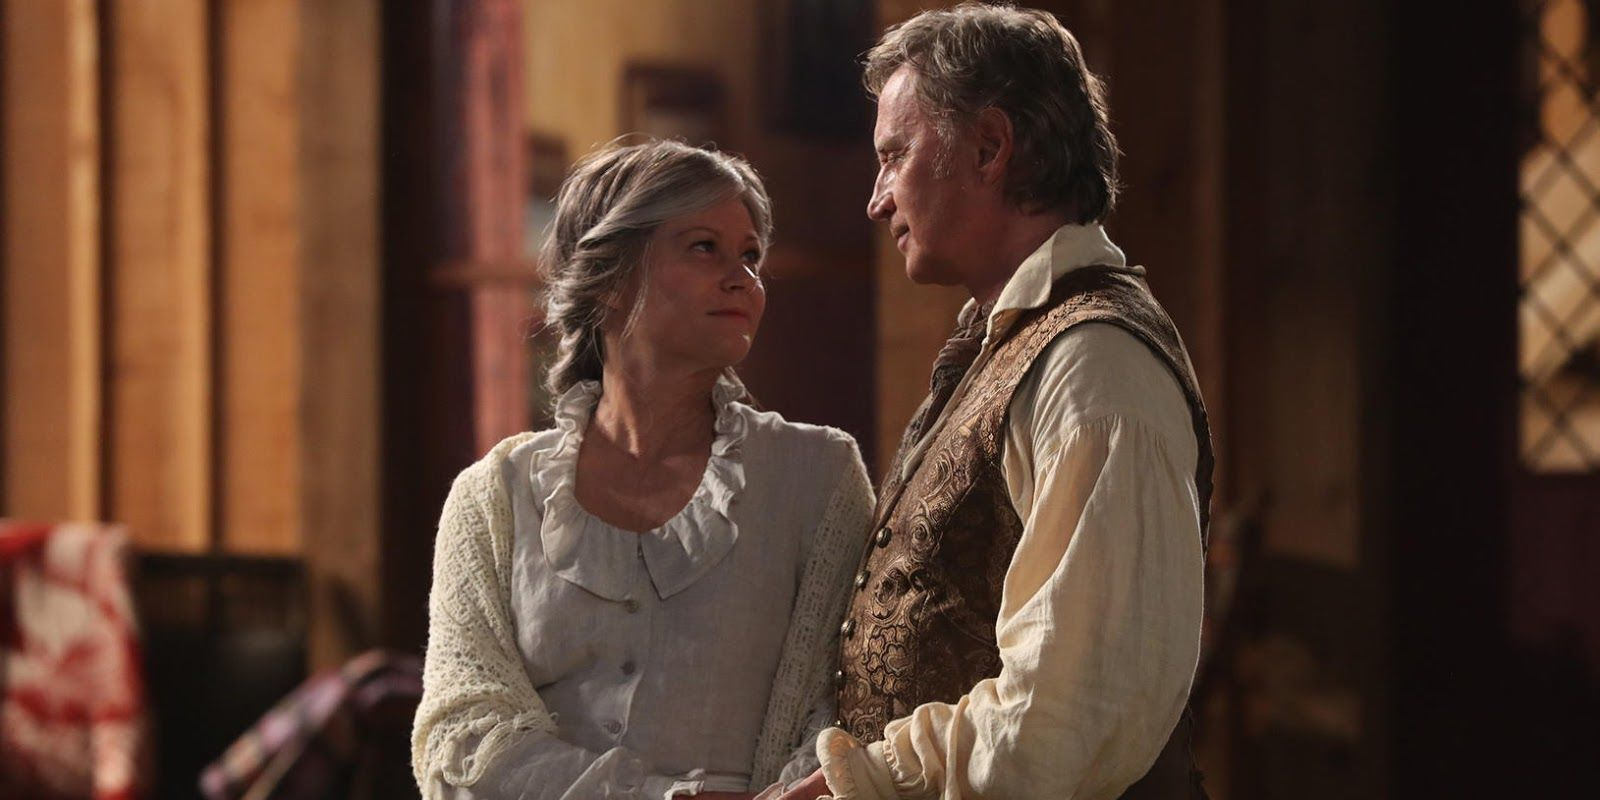 Once Upon a Time reveals first pictures of Emilie de Ravin's return as Belle in episode 4